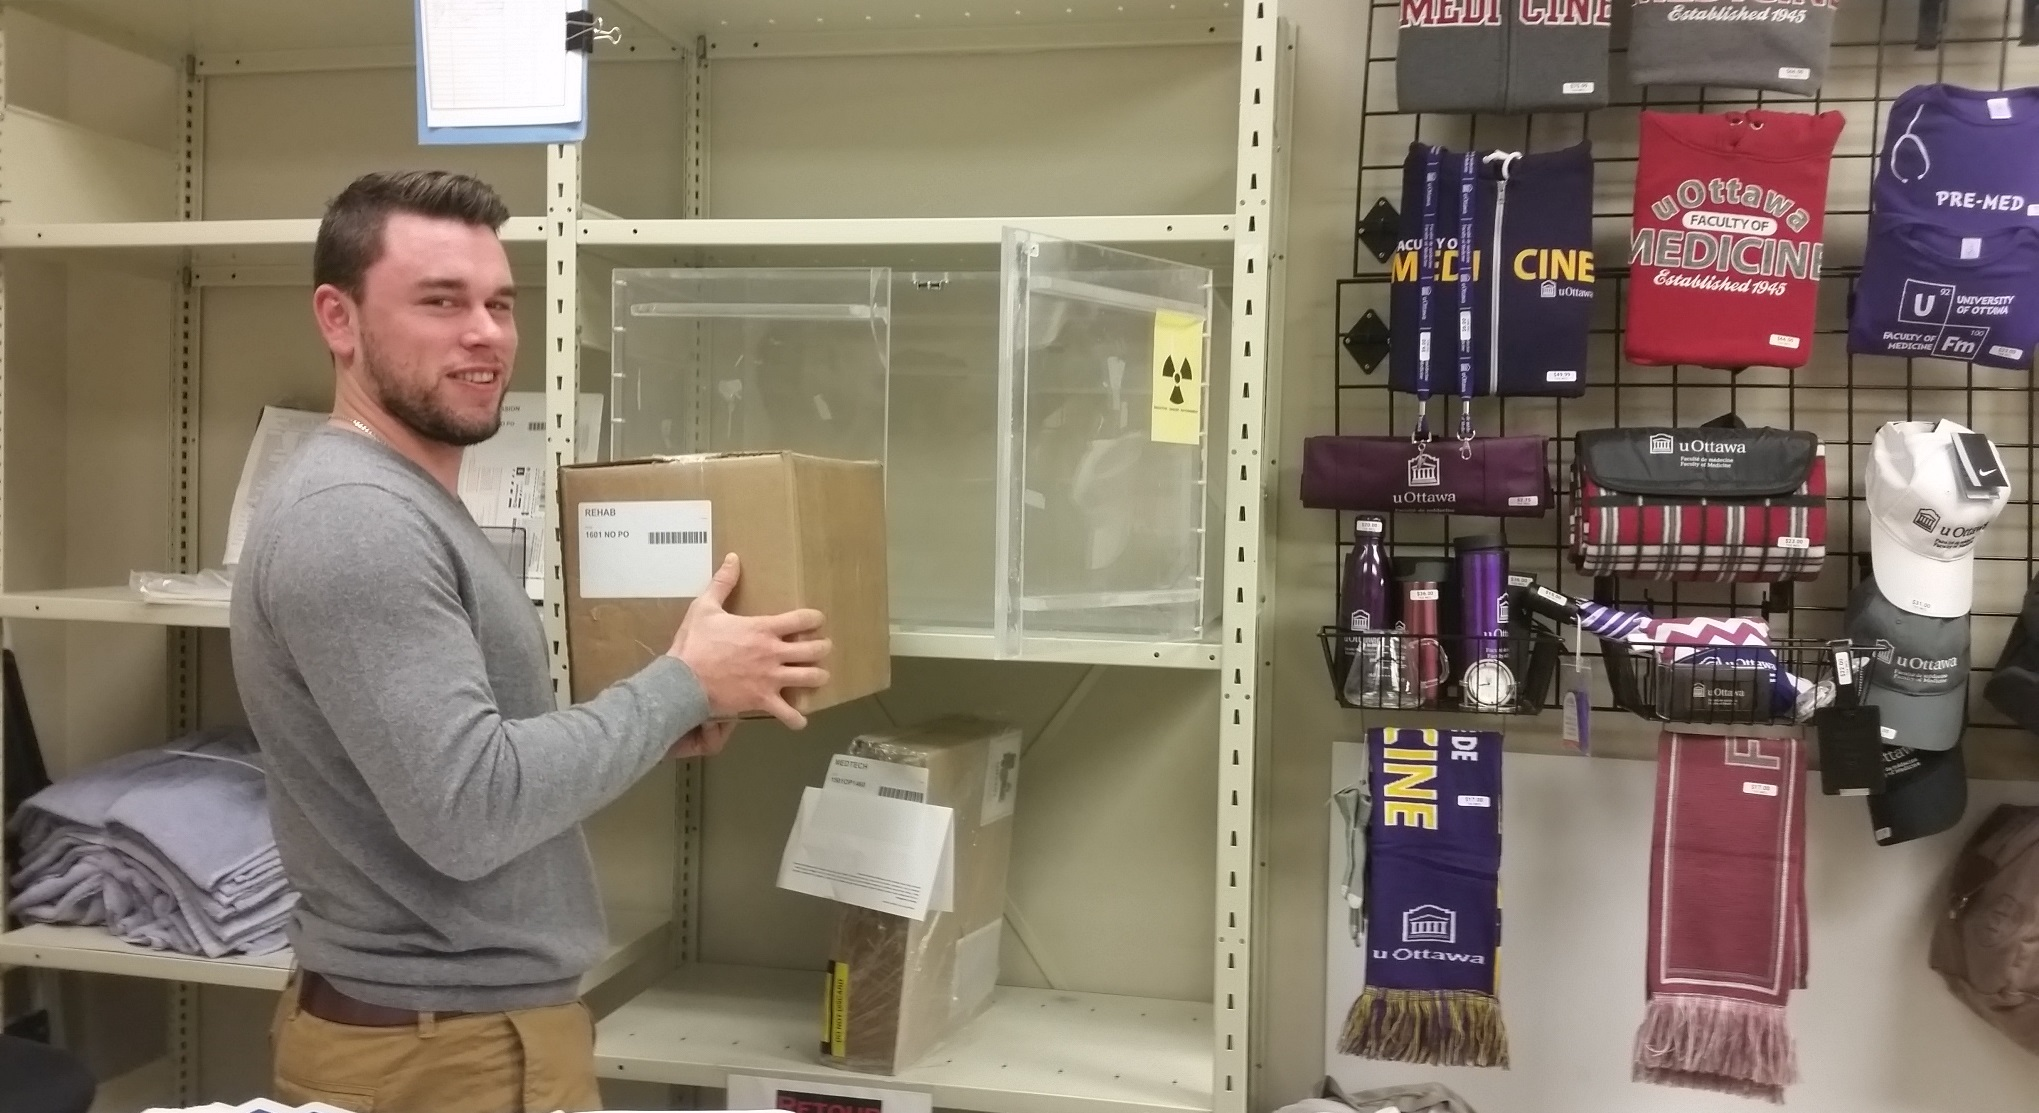 Thierry Gibeault from MedPurch placing a radioisotope package in shielded storage box.